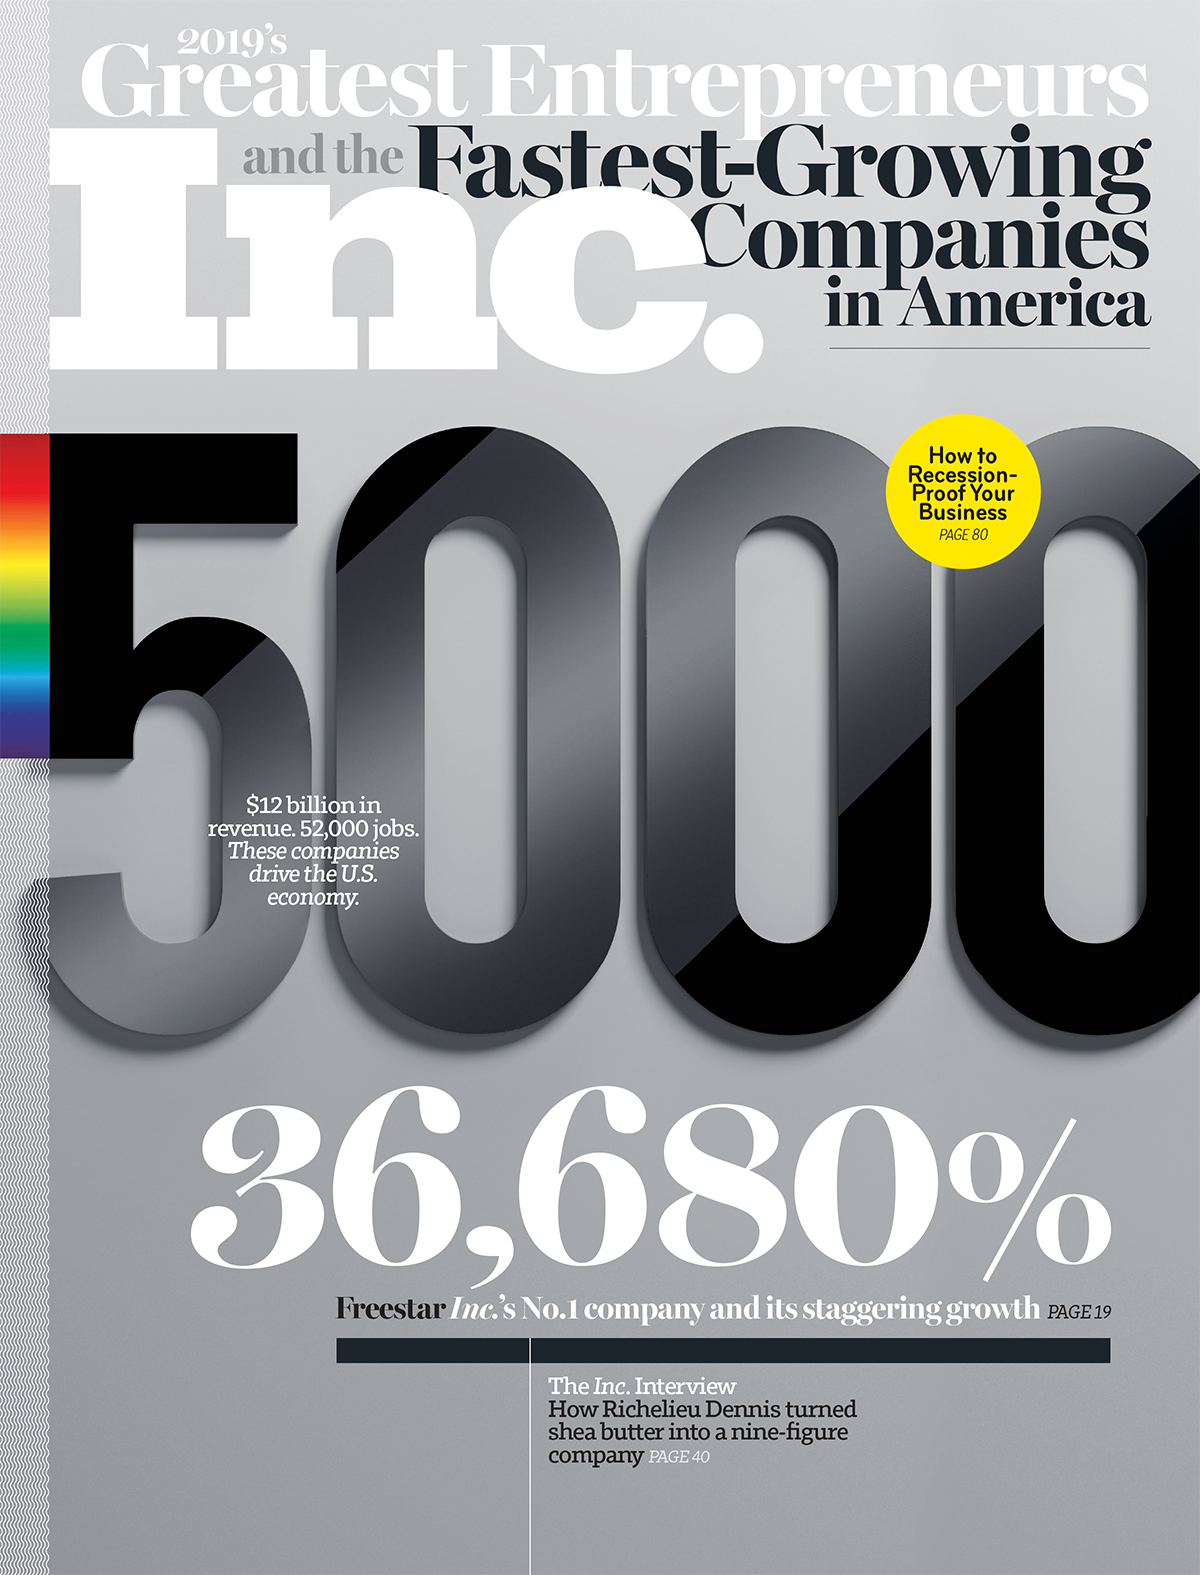 What If's 2019 Rankings:  - 1223 on the Inc. 5000. - 32nd fastest growing company in NJ. - 3-Year Growth: 336%.